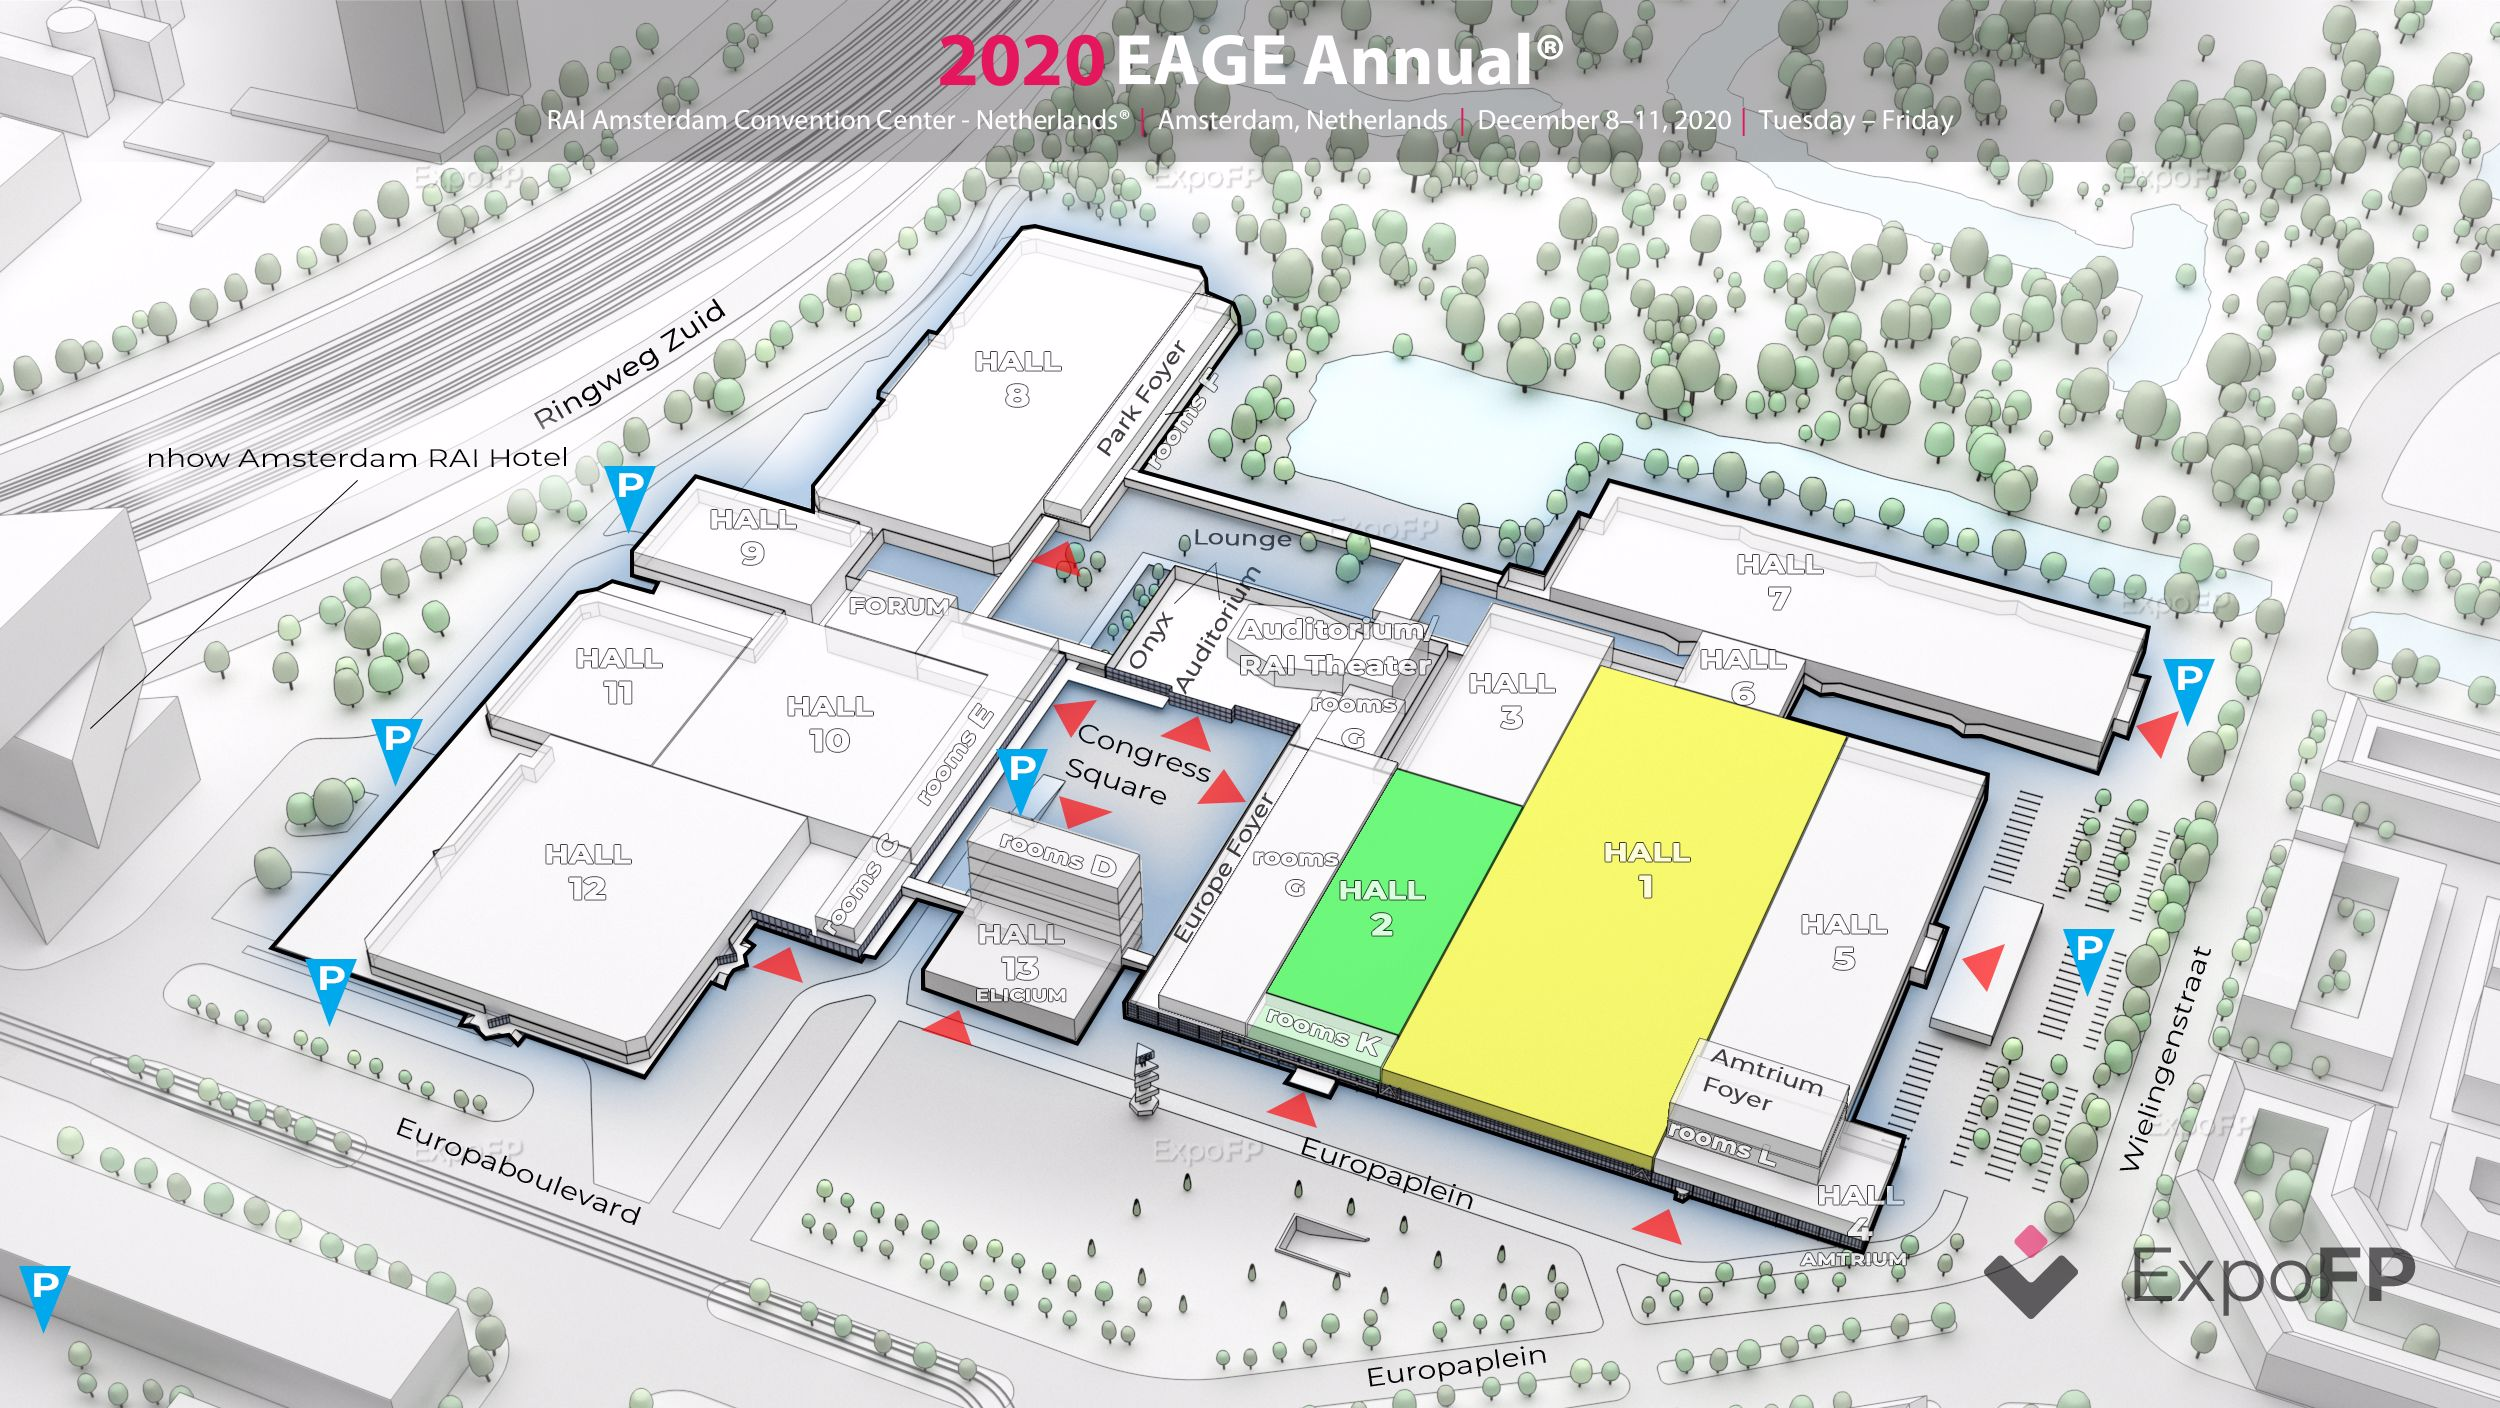 EAGE Annual 2020 3D floor plan